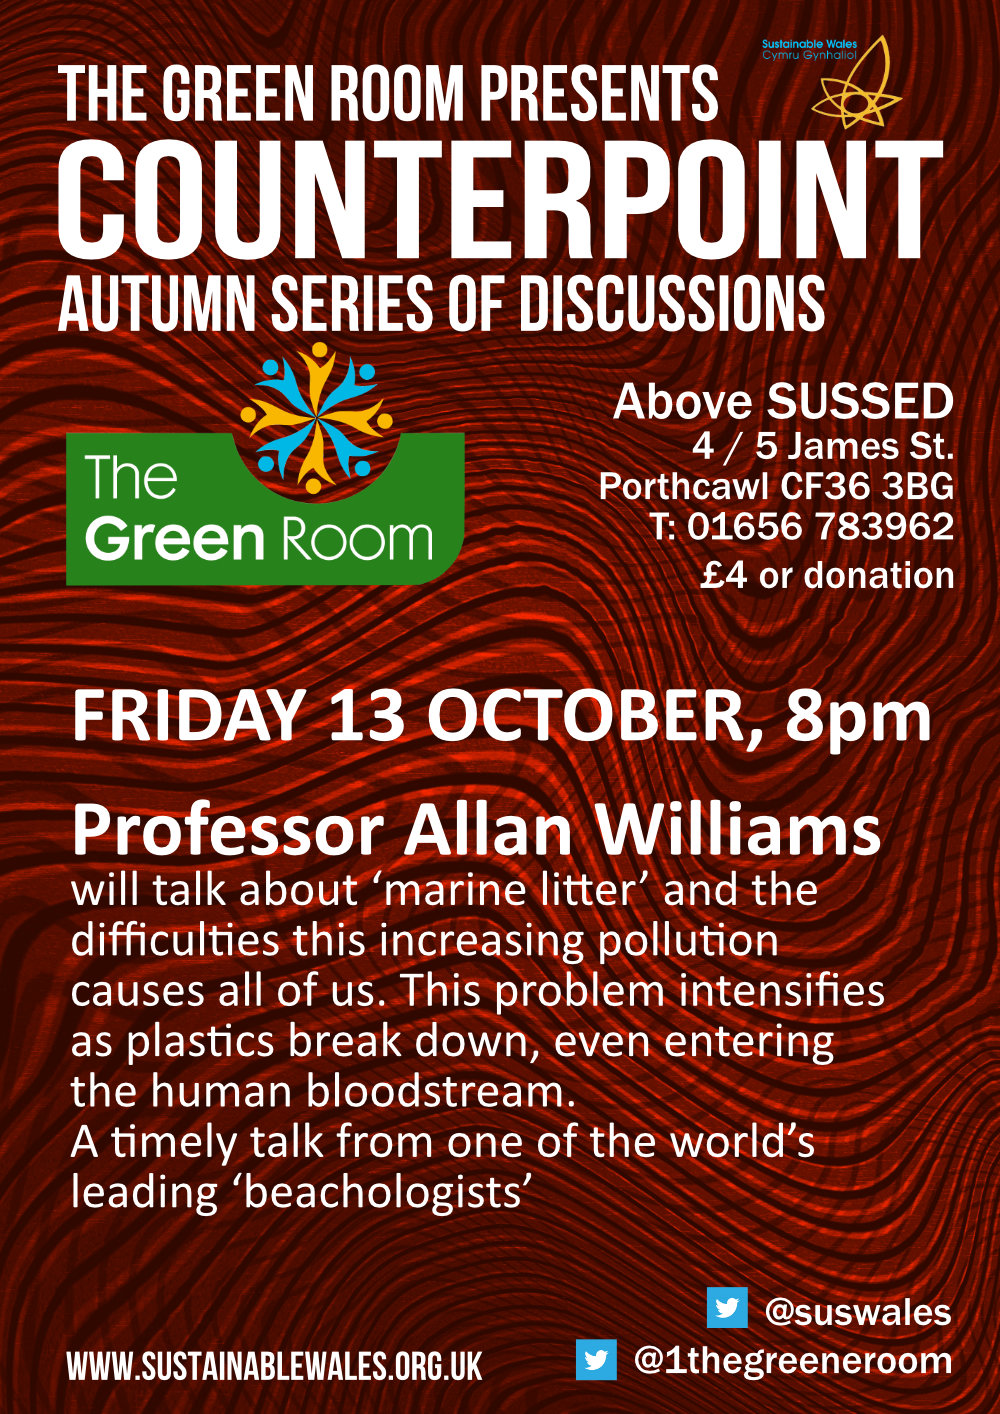 GReen Room 13 OCT Allan williams email.jpg